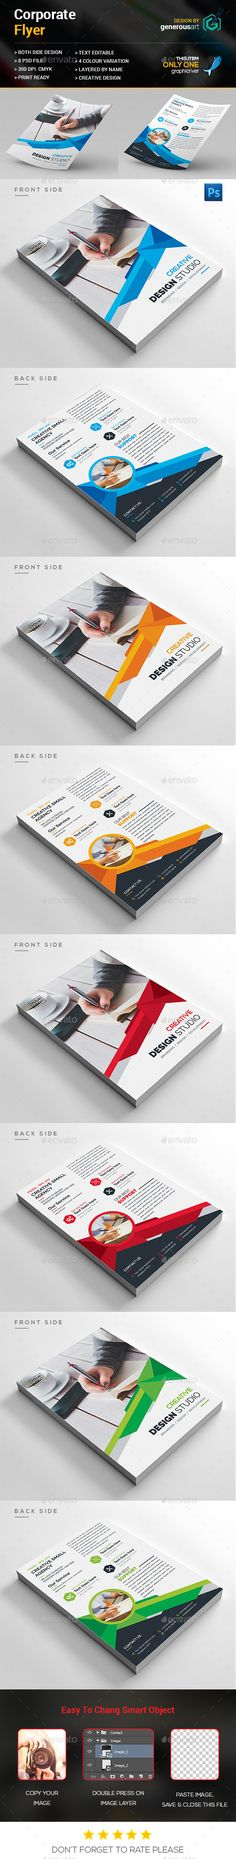 Buy Corporate Flyer by generousart on GraphicRiver. File Information: Easy Customizable and Editable Size CMYK Color Design in 300 DPI Resolution Print Ready. Corporate Flyer, Corporate Design, Flyer Design, Web Design, Graphic Design, Flyer Printing, Print Templates, Editorial Design, Flyer Template